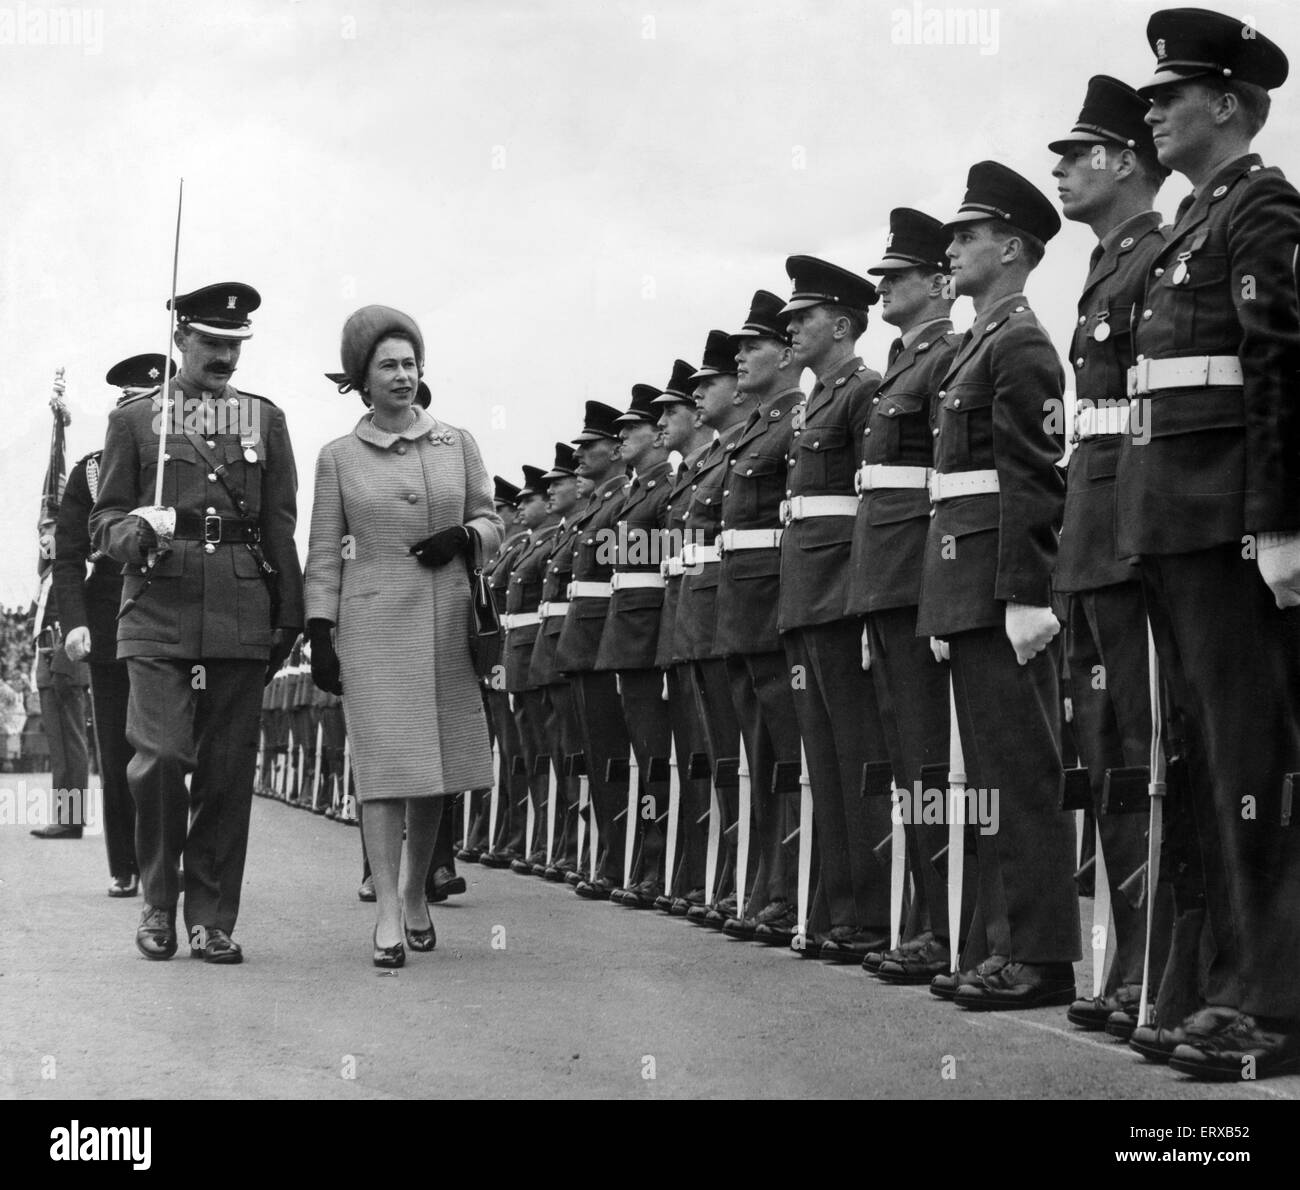 The Queen , accompanied by Major M Pim, inspects the Guard of Honour of the 1st Battalion of the South Wales Borderers - Stock Image